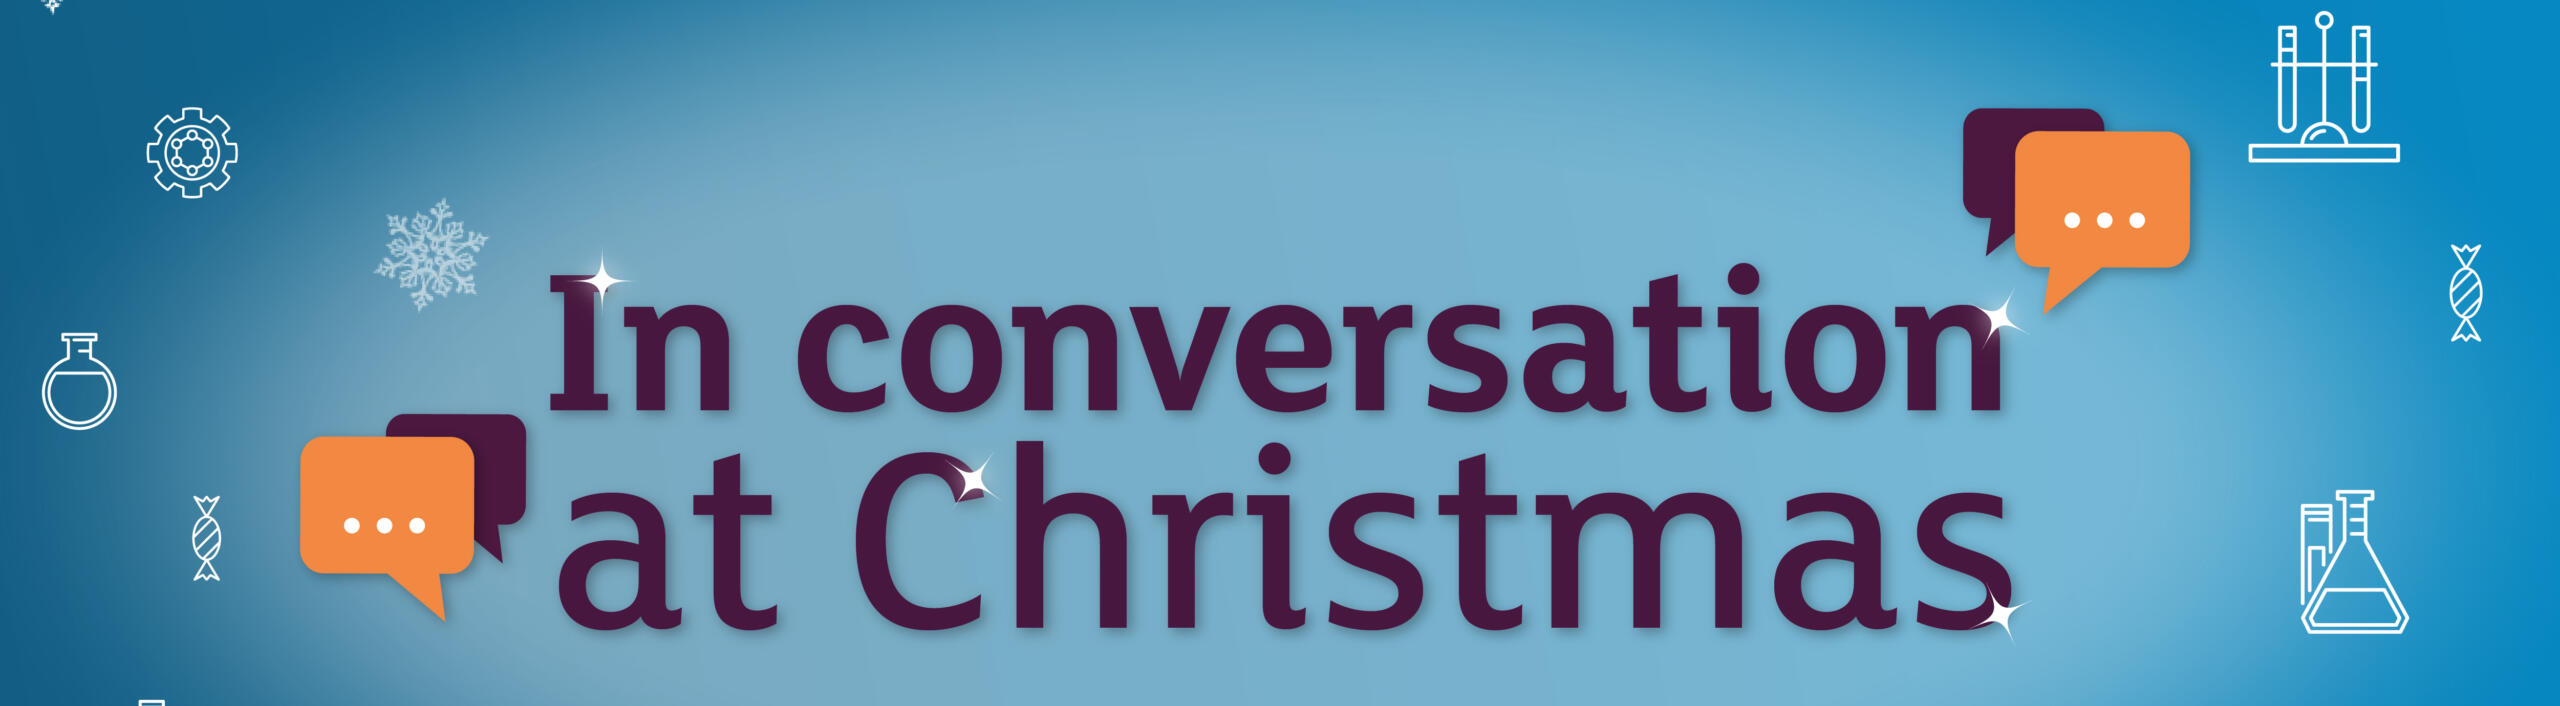 Christmas-conversation-1200x630px-cropped